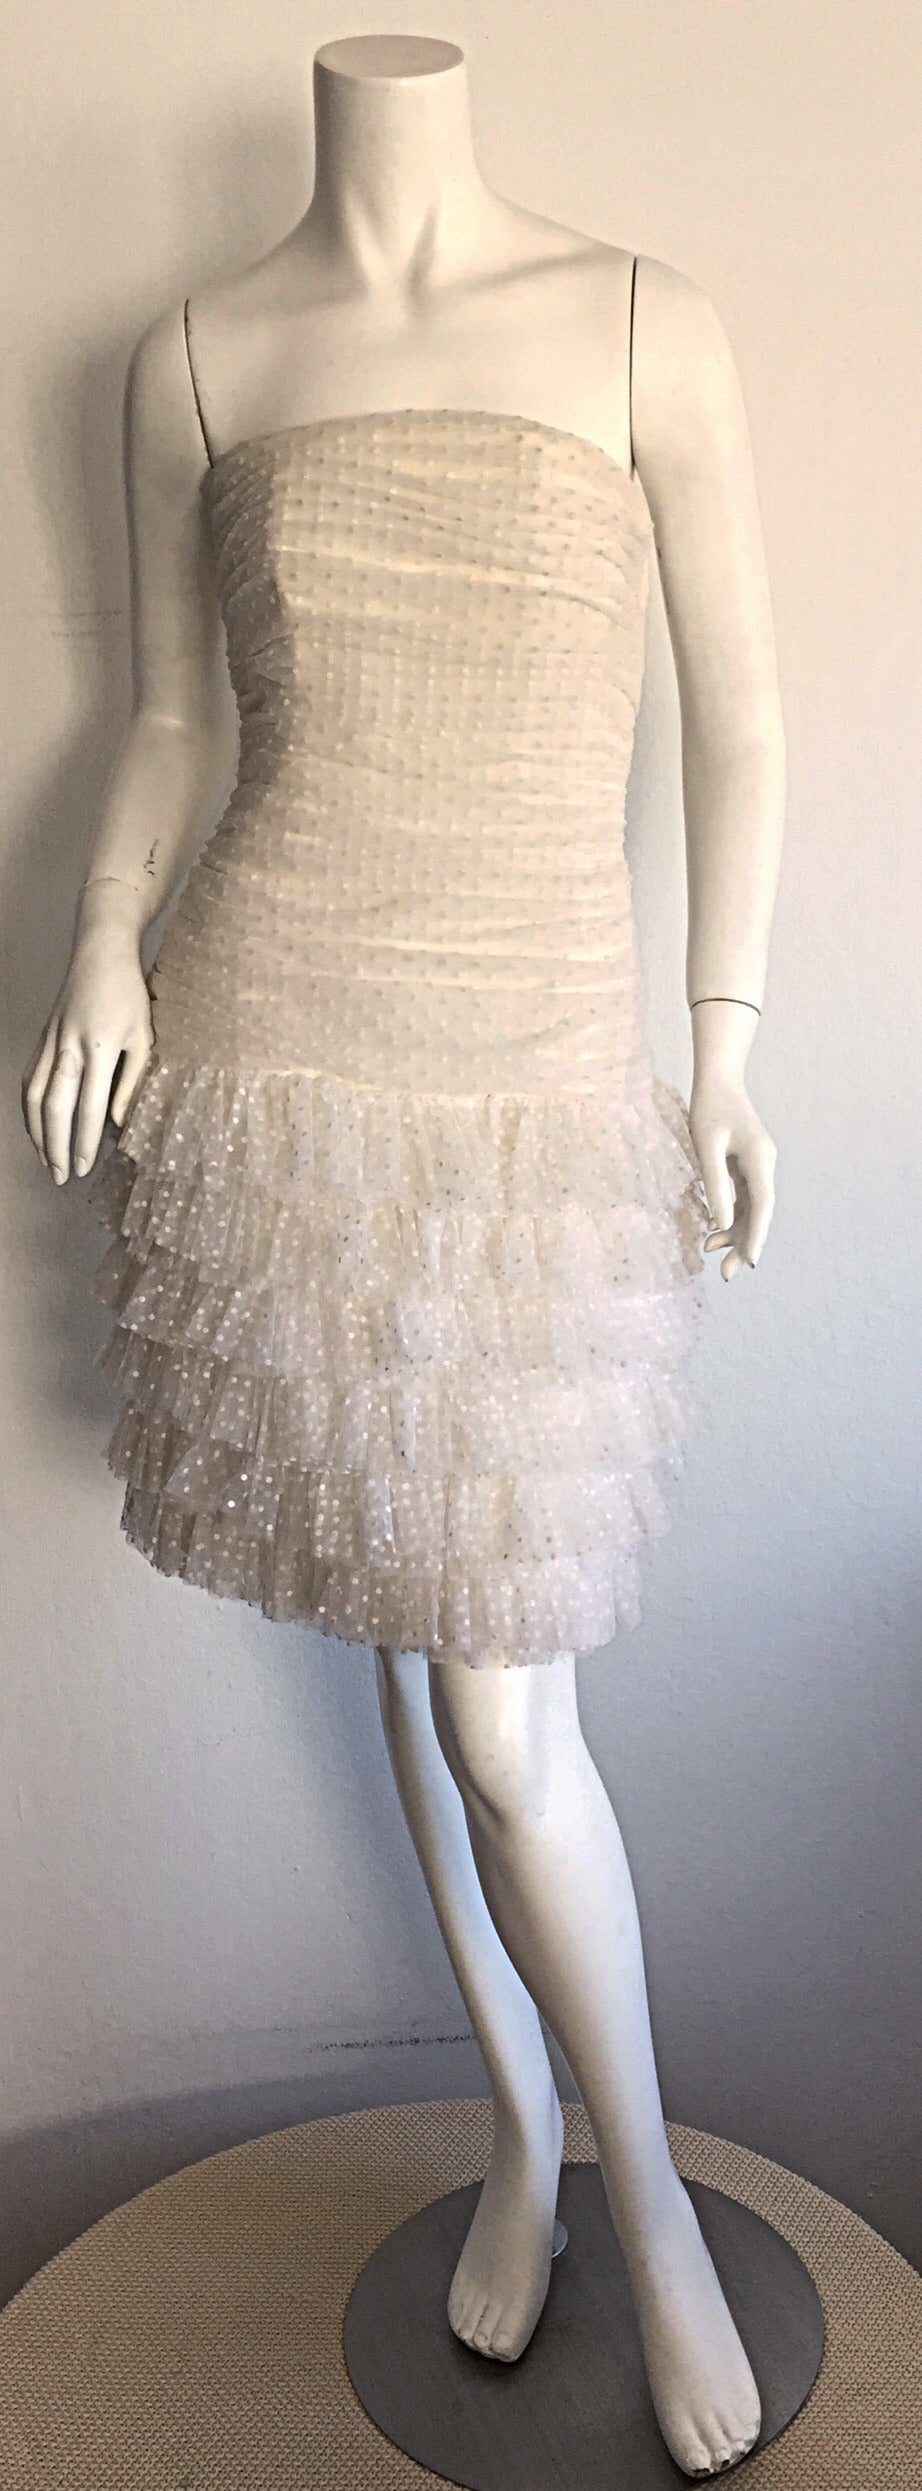 1990s Carolyne Roehm White Polka Dot ' Feathered ' Strapless Wedding Dress 8